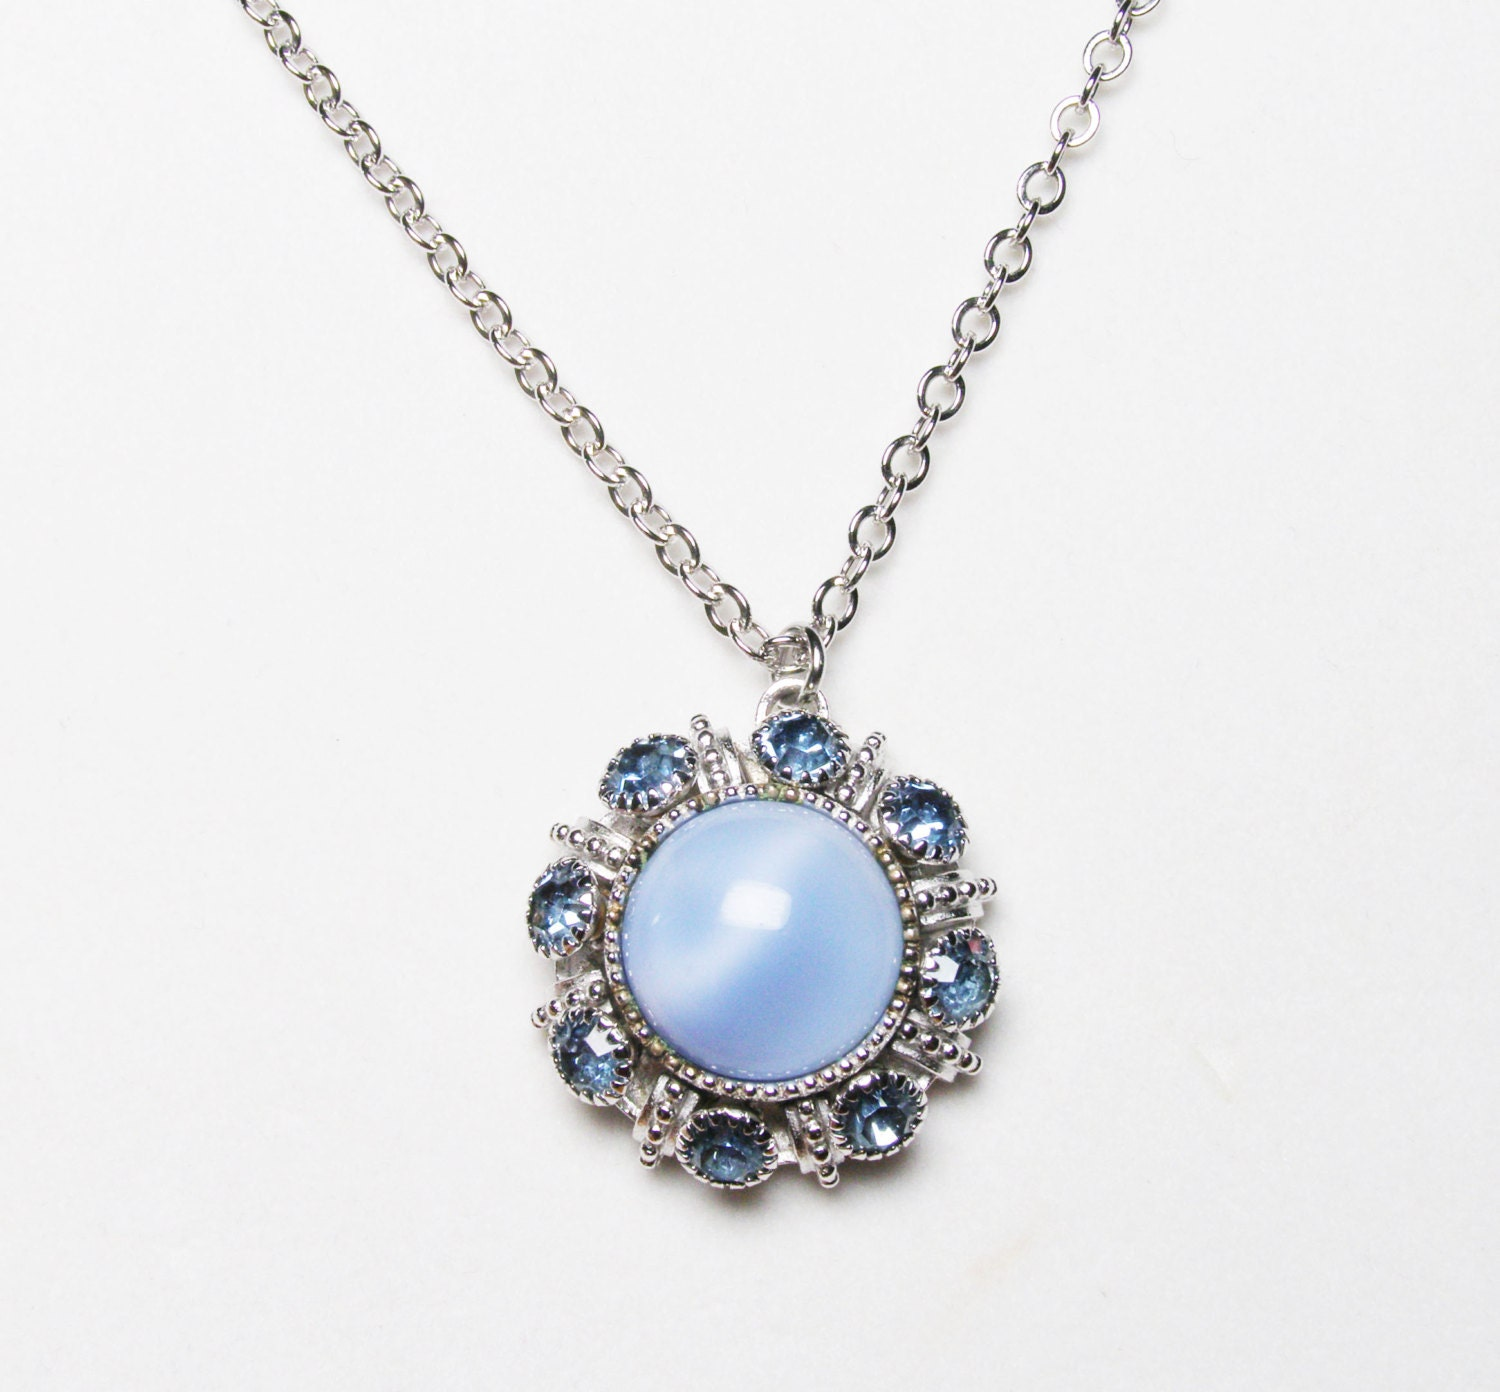 Vintage Avon Blue Moonstone Pendant Necklace by LorettasCache